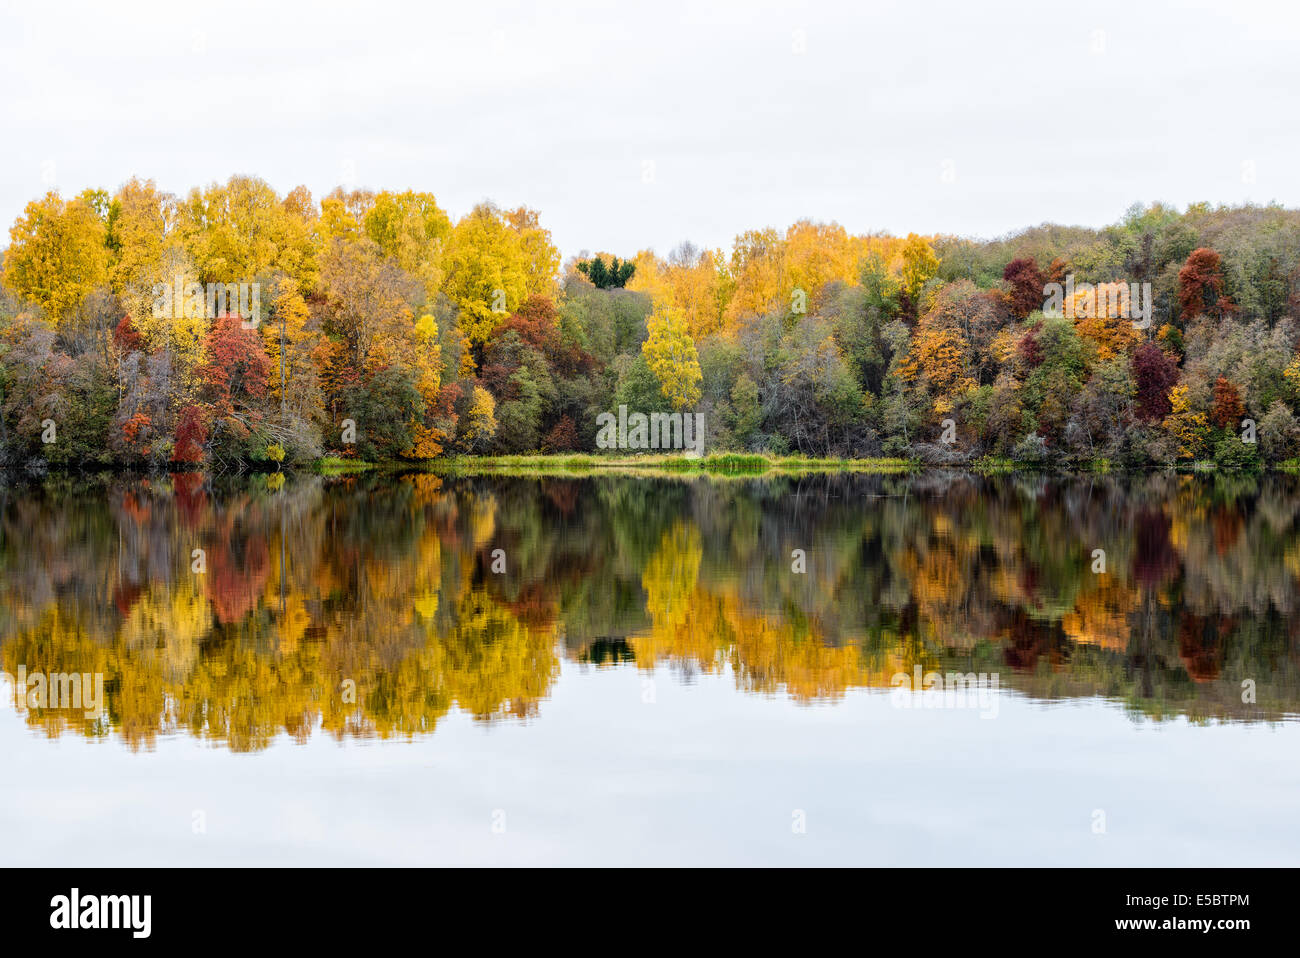 Reflection of autumn trees in river - Stock Image